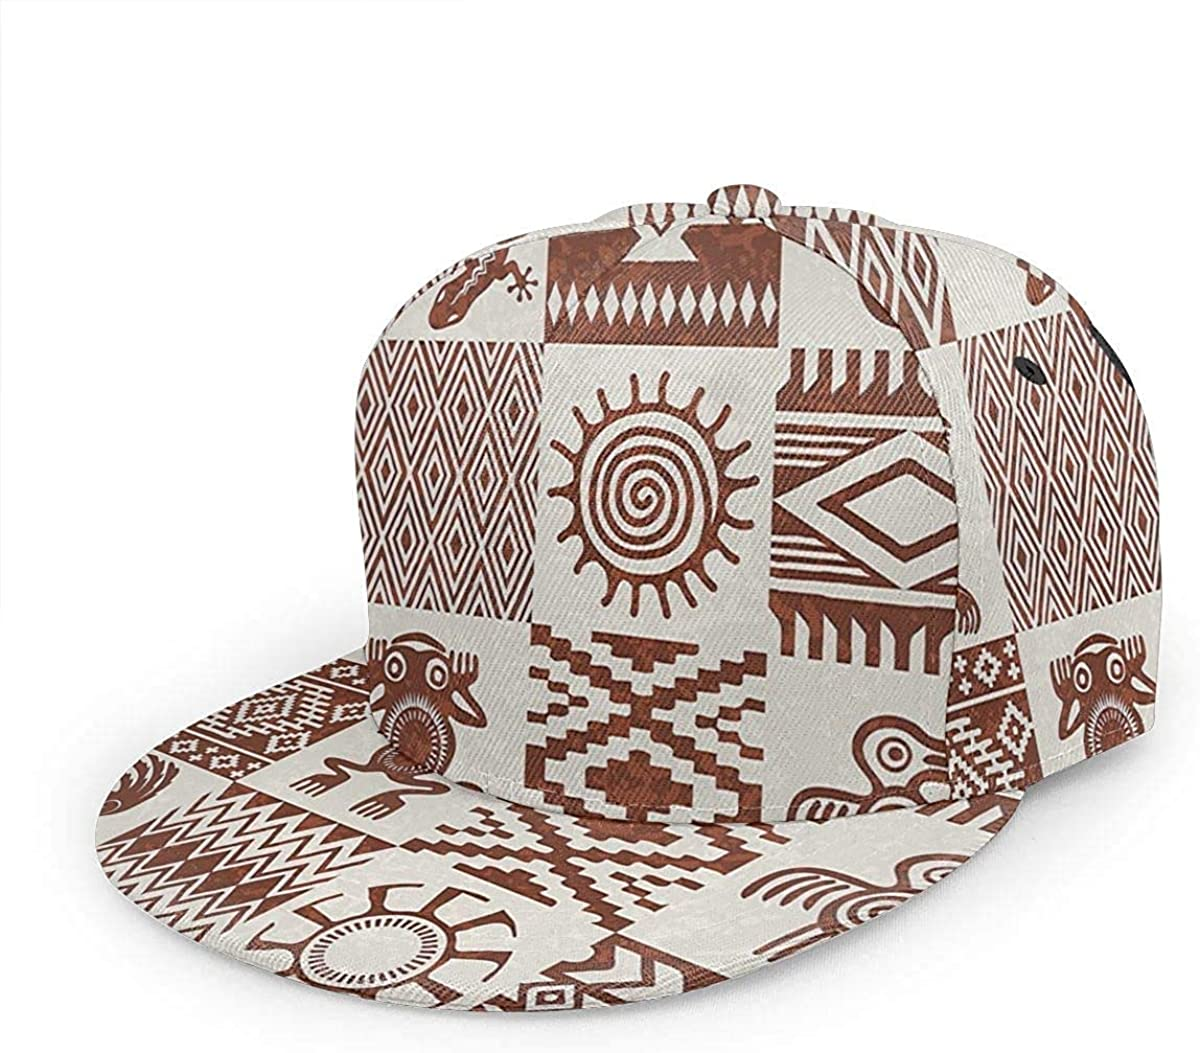 Southwestern Frames with Ethnic Redwood and Eggshell Lightweight Unisex Baseball Caps Adjustable Breathable Sun Hat for Sport Outdoor Black